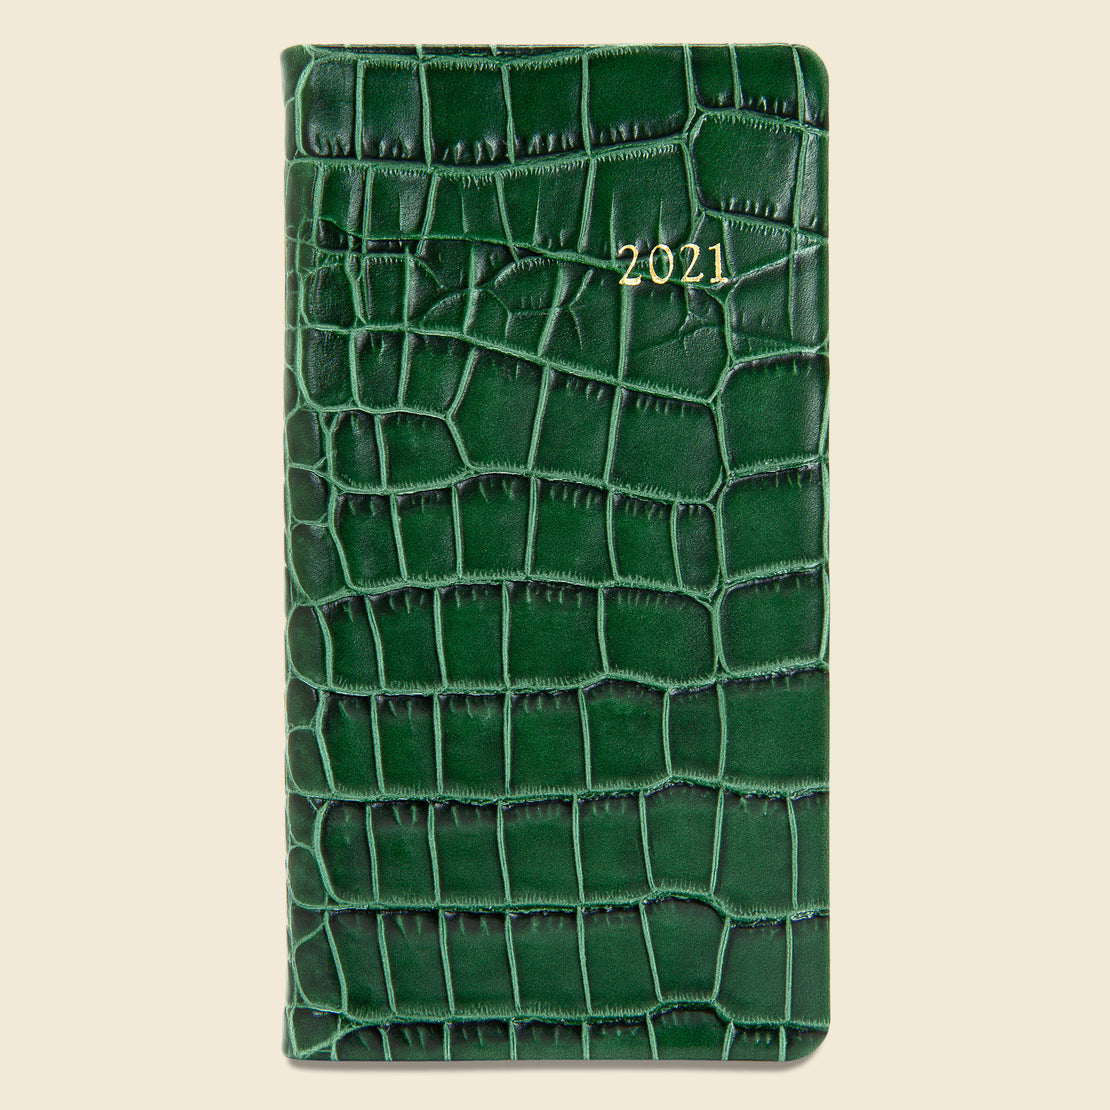 Paper Goods 2021 Embossed Leather Pocket Datebook - Emerald Crocodile